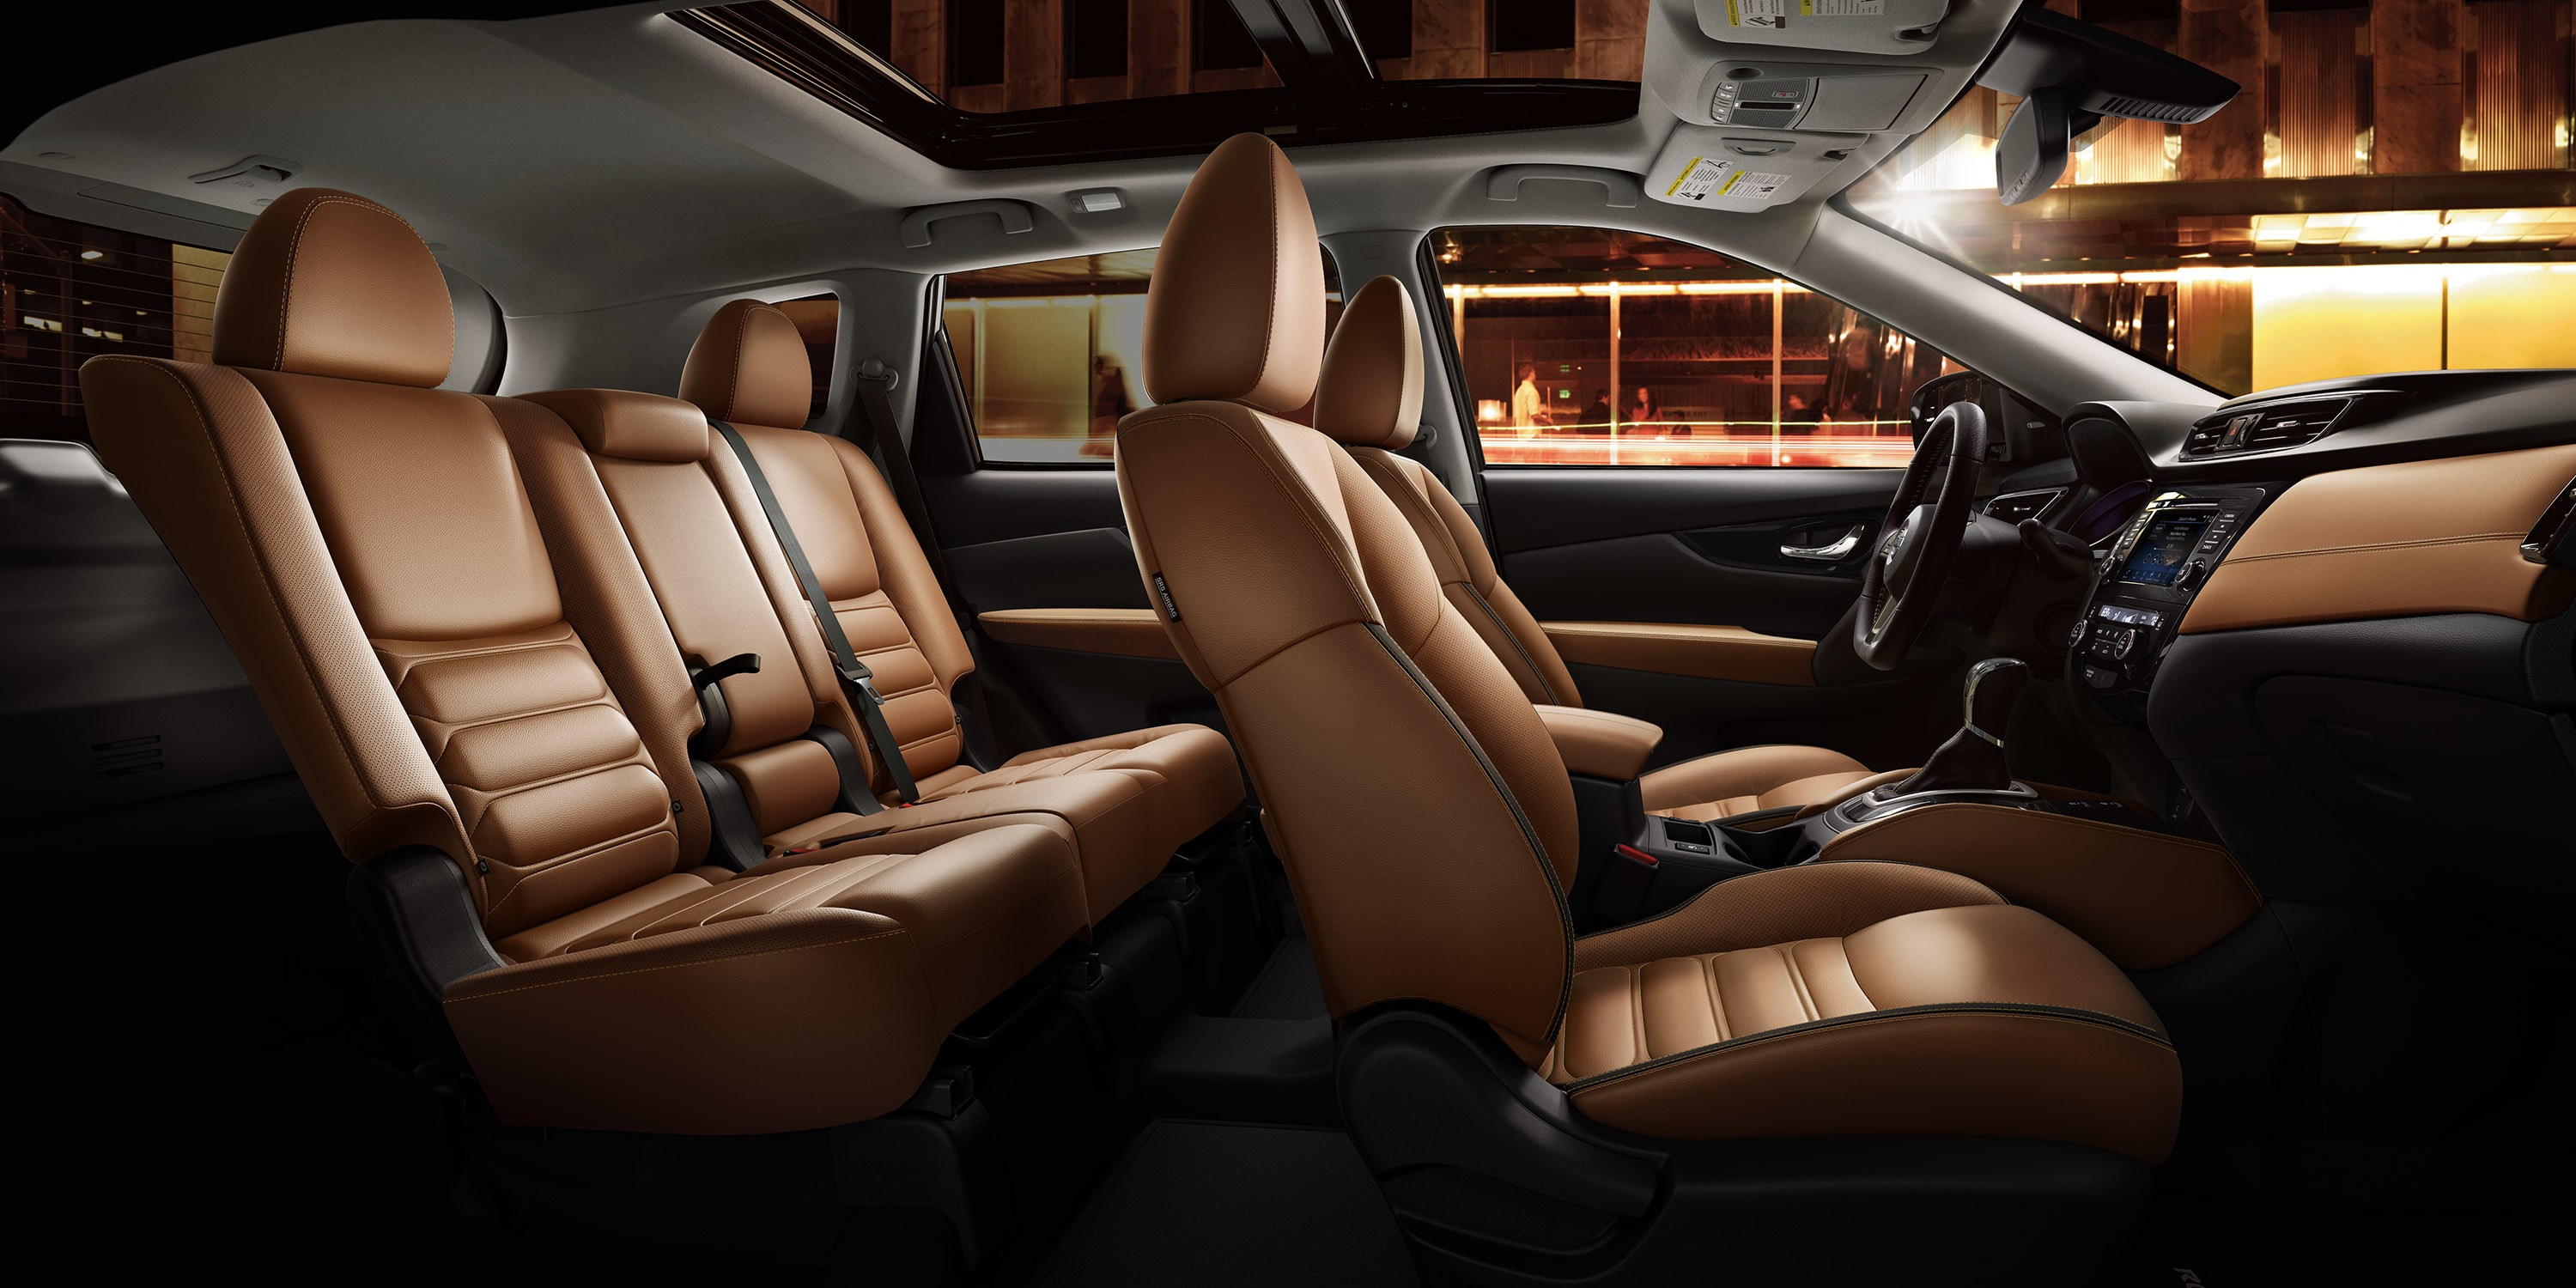 2019 Rogue Full Seating